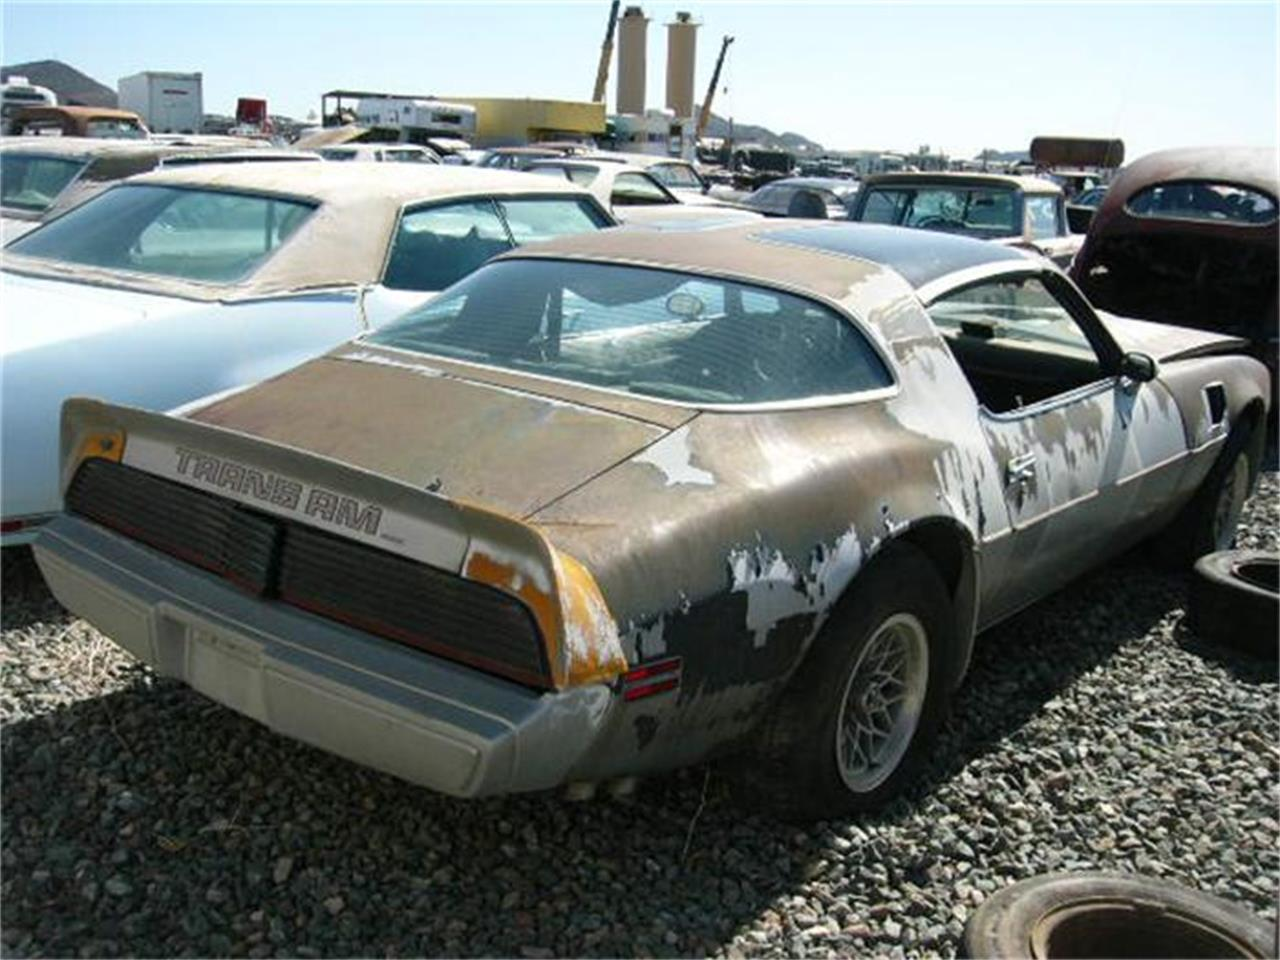 1979 Trans Am Picture For Sale 1979 Pontiac Firebird Trans Am In Phoenix Arizona